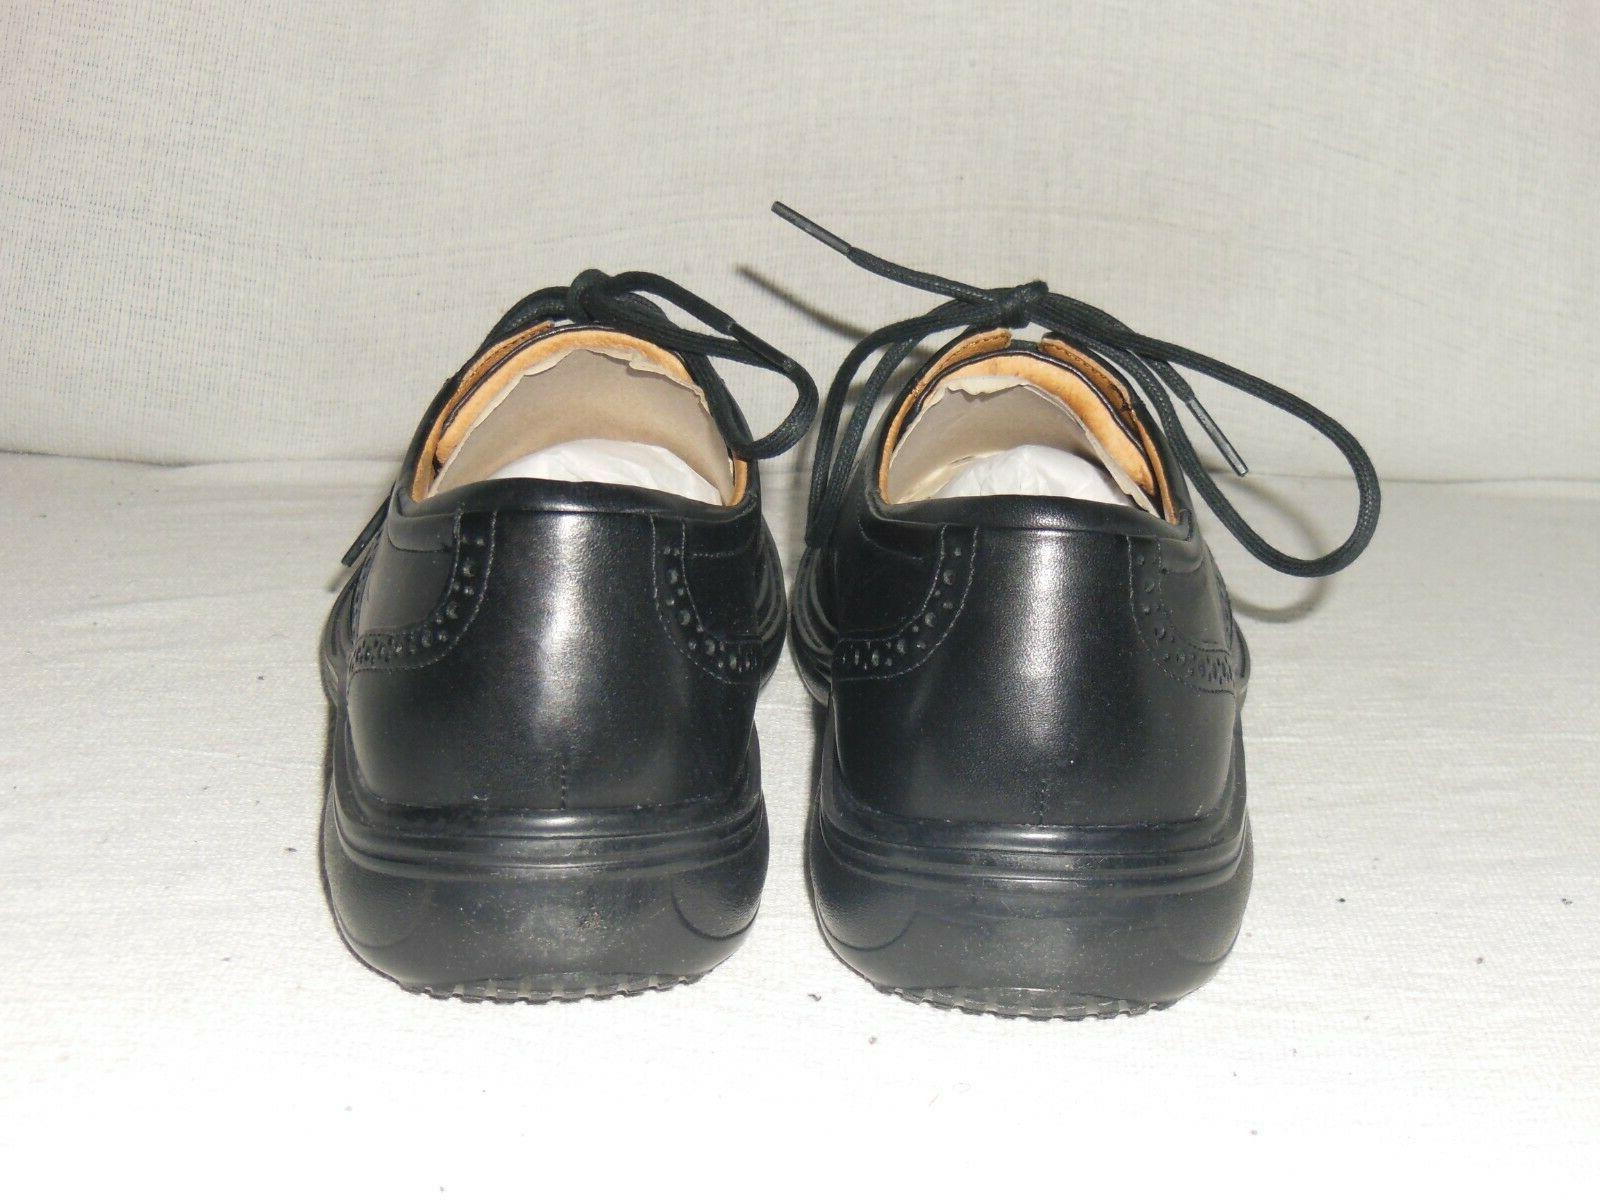 Dr. Comfort Wing Therapeutic Diabetic Extra Depth Dress Shoes Men's 6.5